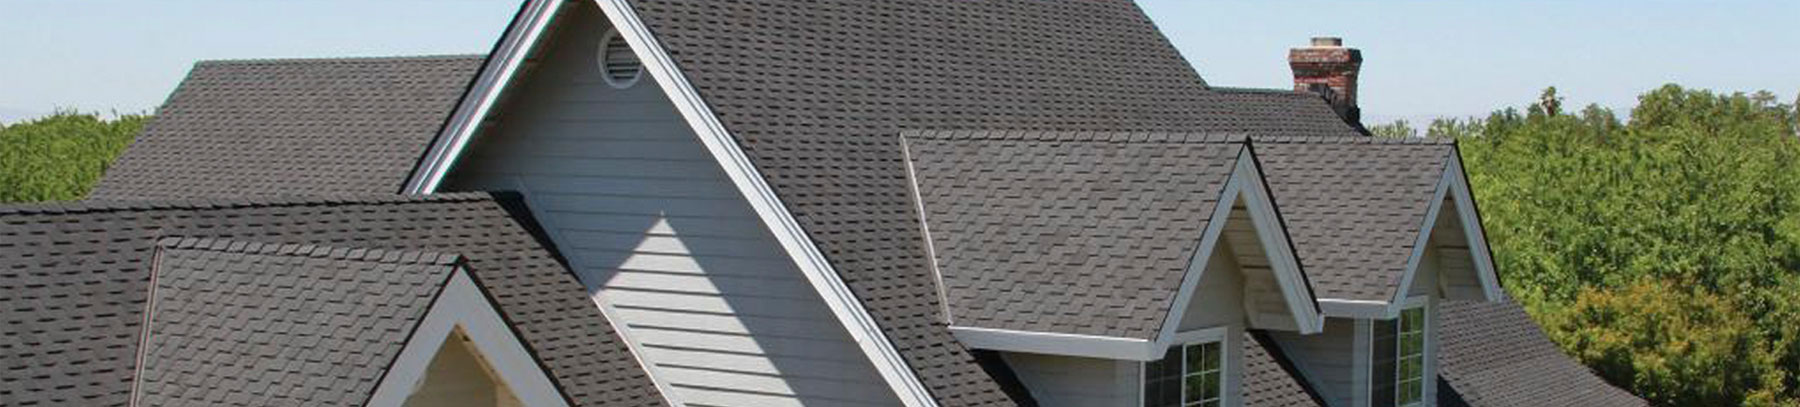 Roof Repair near Jersey City NJ